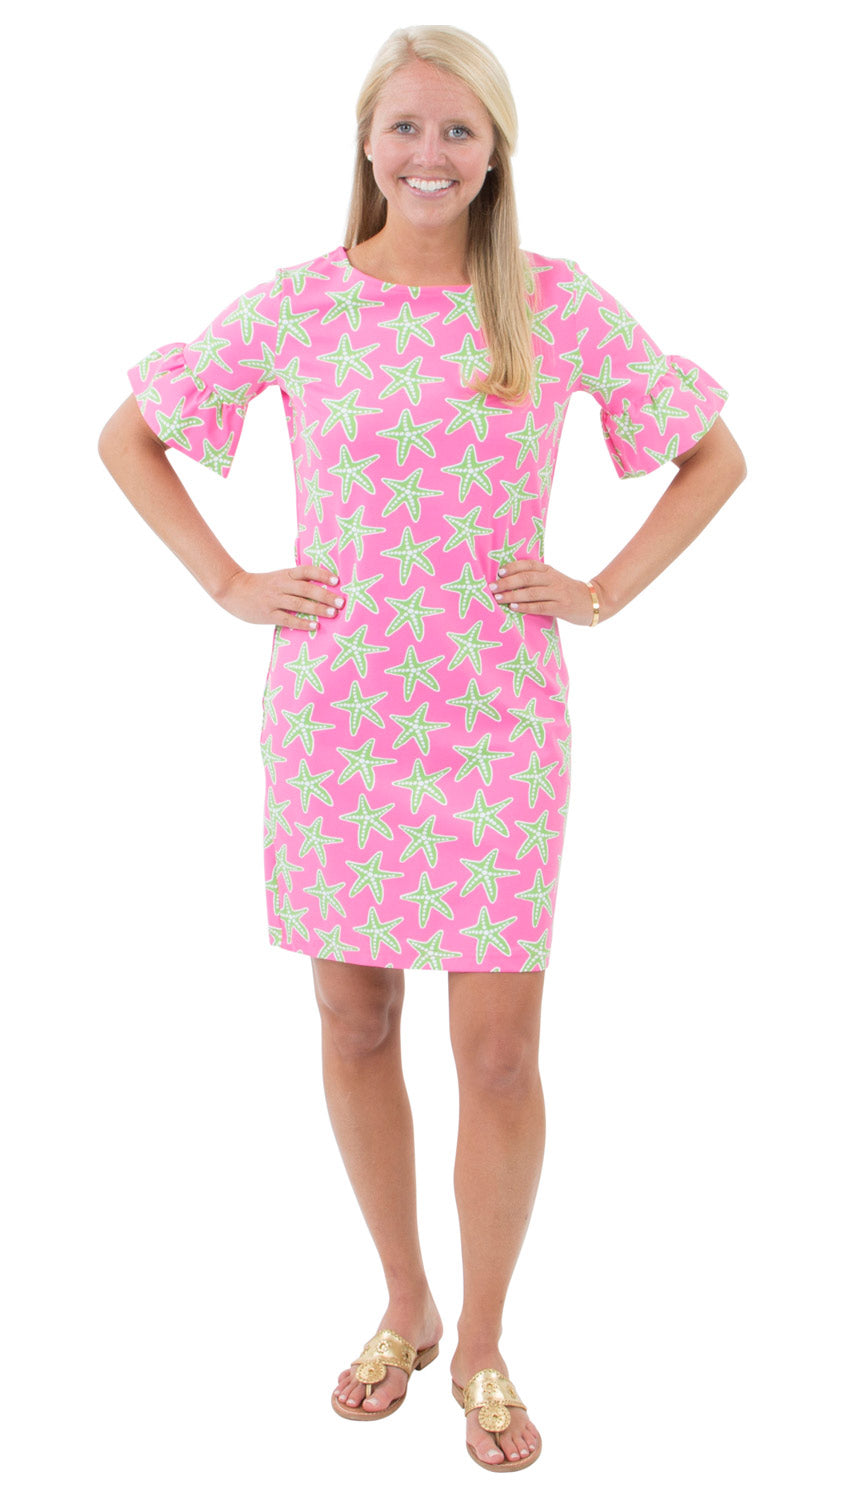 Dockside Dress - Sea Stars Pink/Green